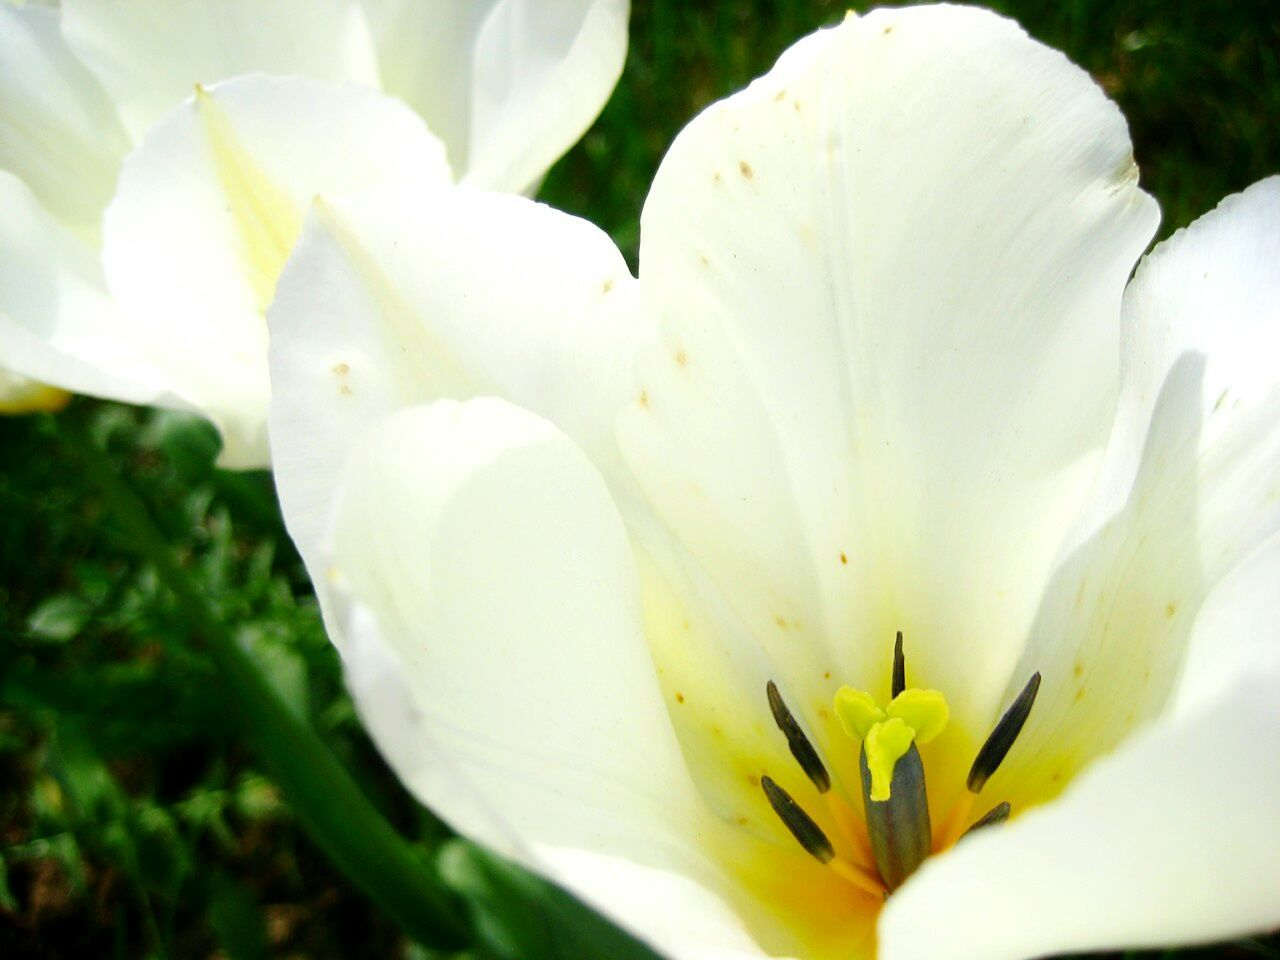 Growth Flower Nature Beauty In Nature Petal White Color Freshness Flower Head Fragility Plant Outdoors Blooming Close-up No People Day Day Lily Tullips